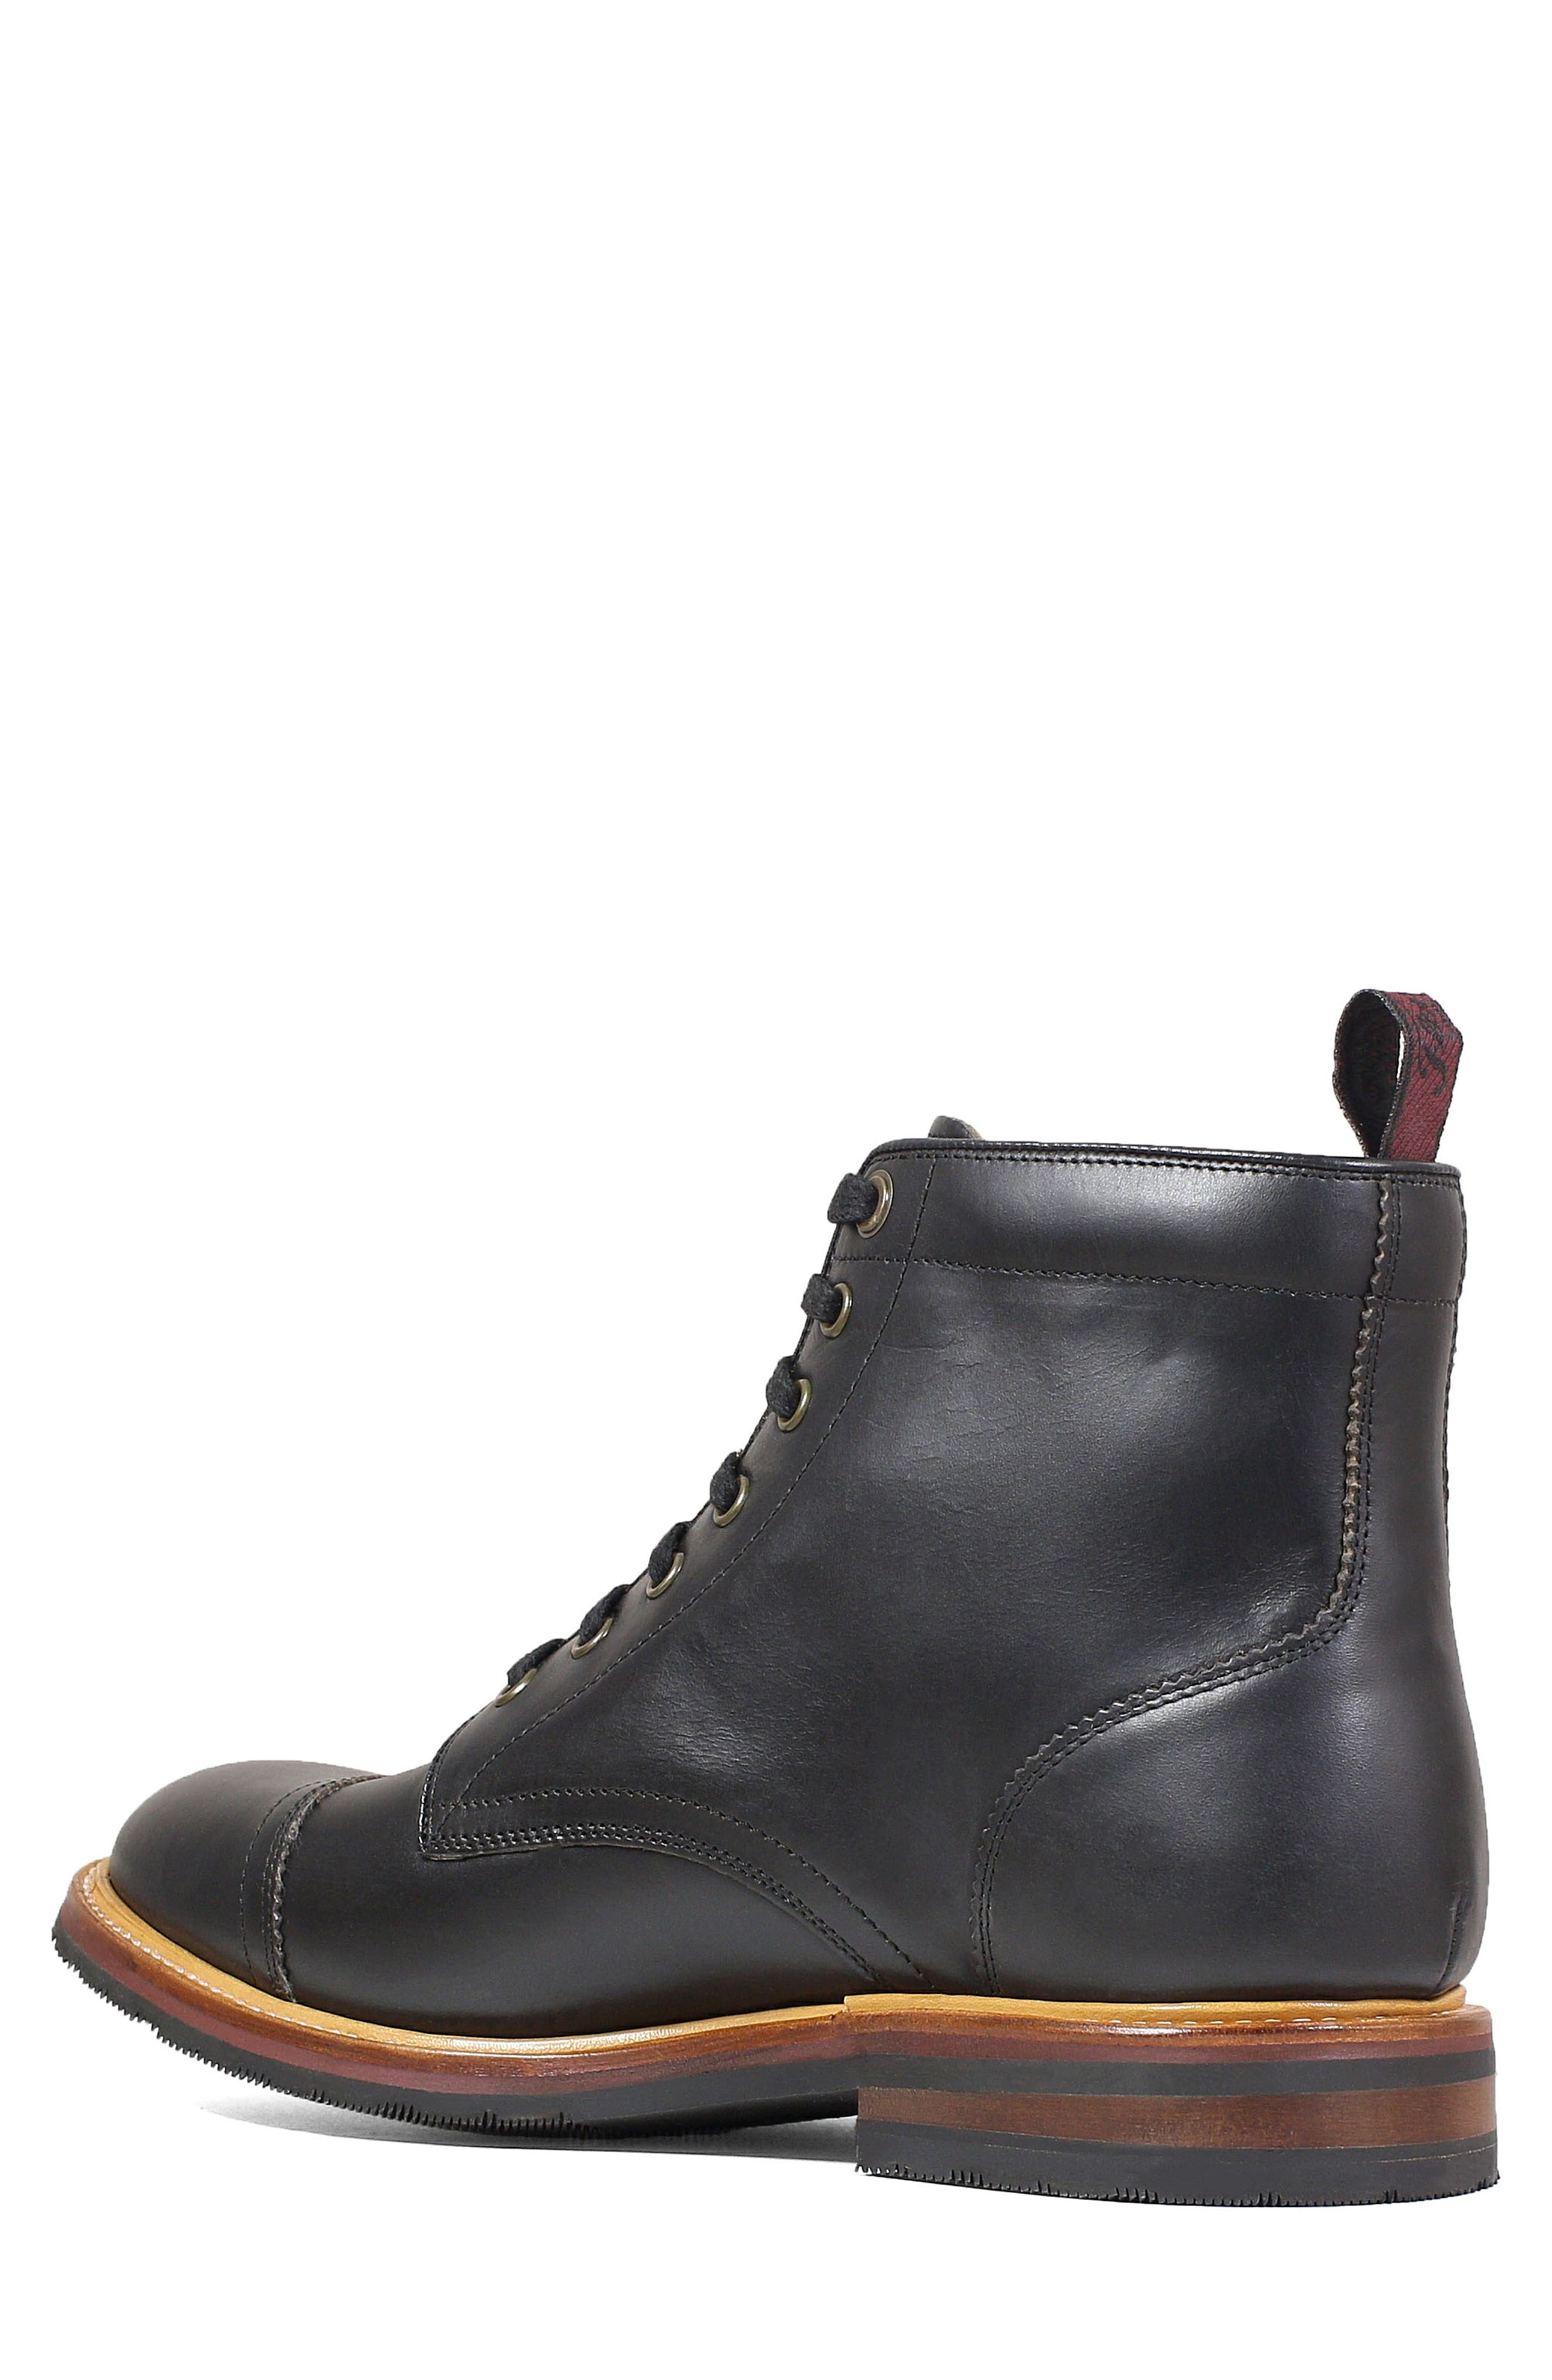 Founcry Cap Toe Boot,                             Alternate thumbnail 2, color,                             BLACK LEATHER